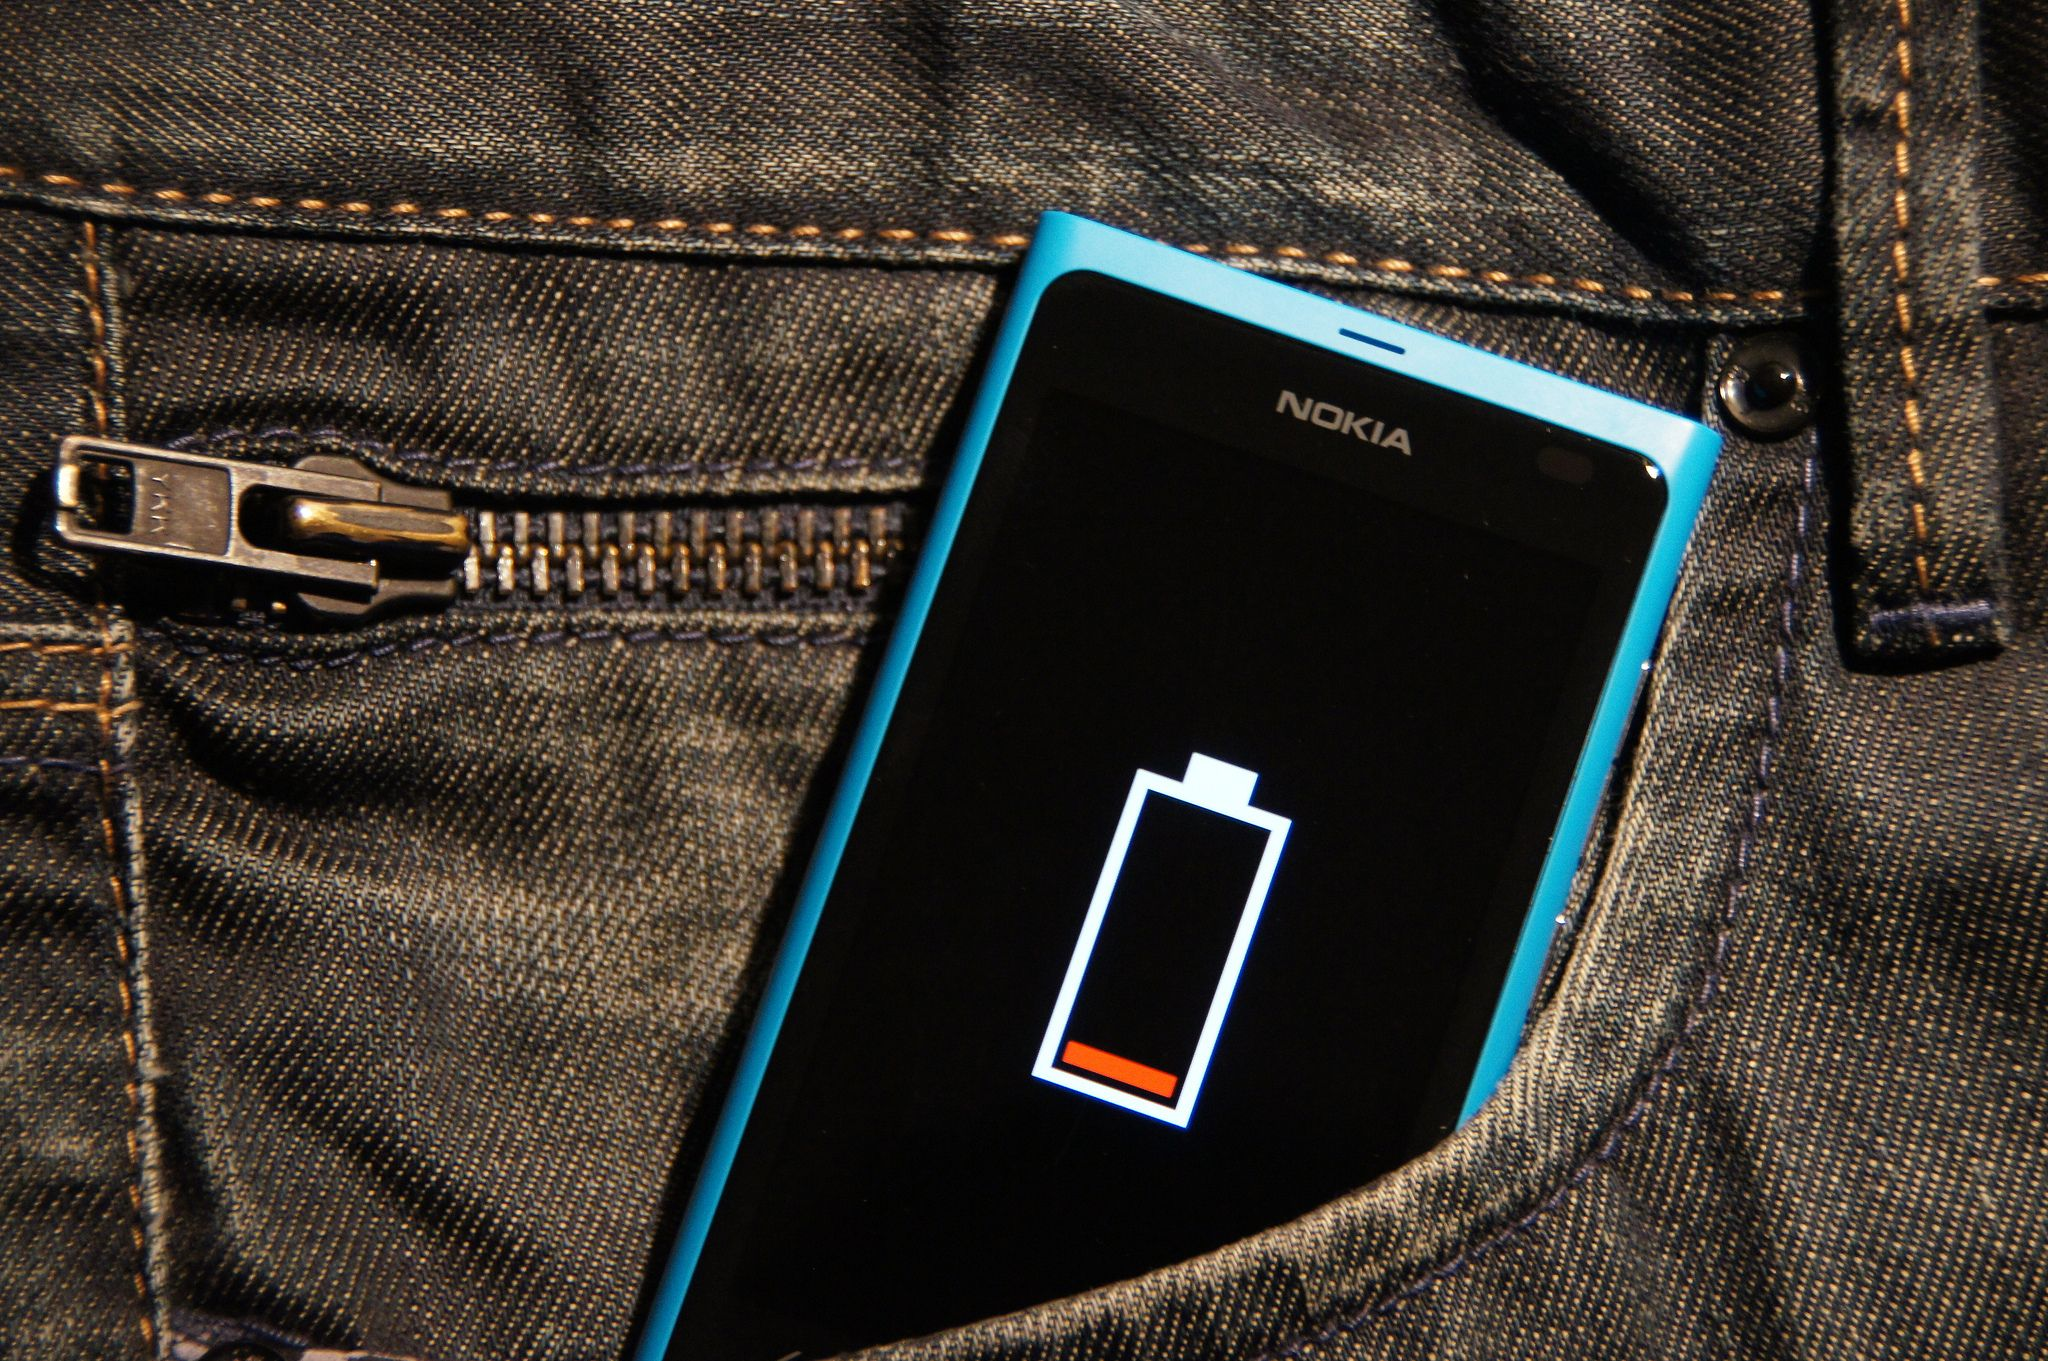 8 Essential Tips To Keep Your Phone's Battery Healthy